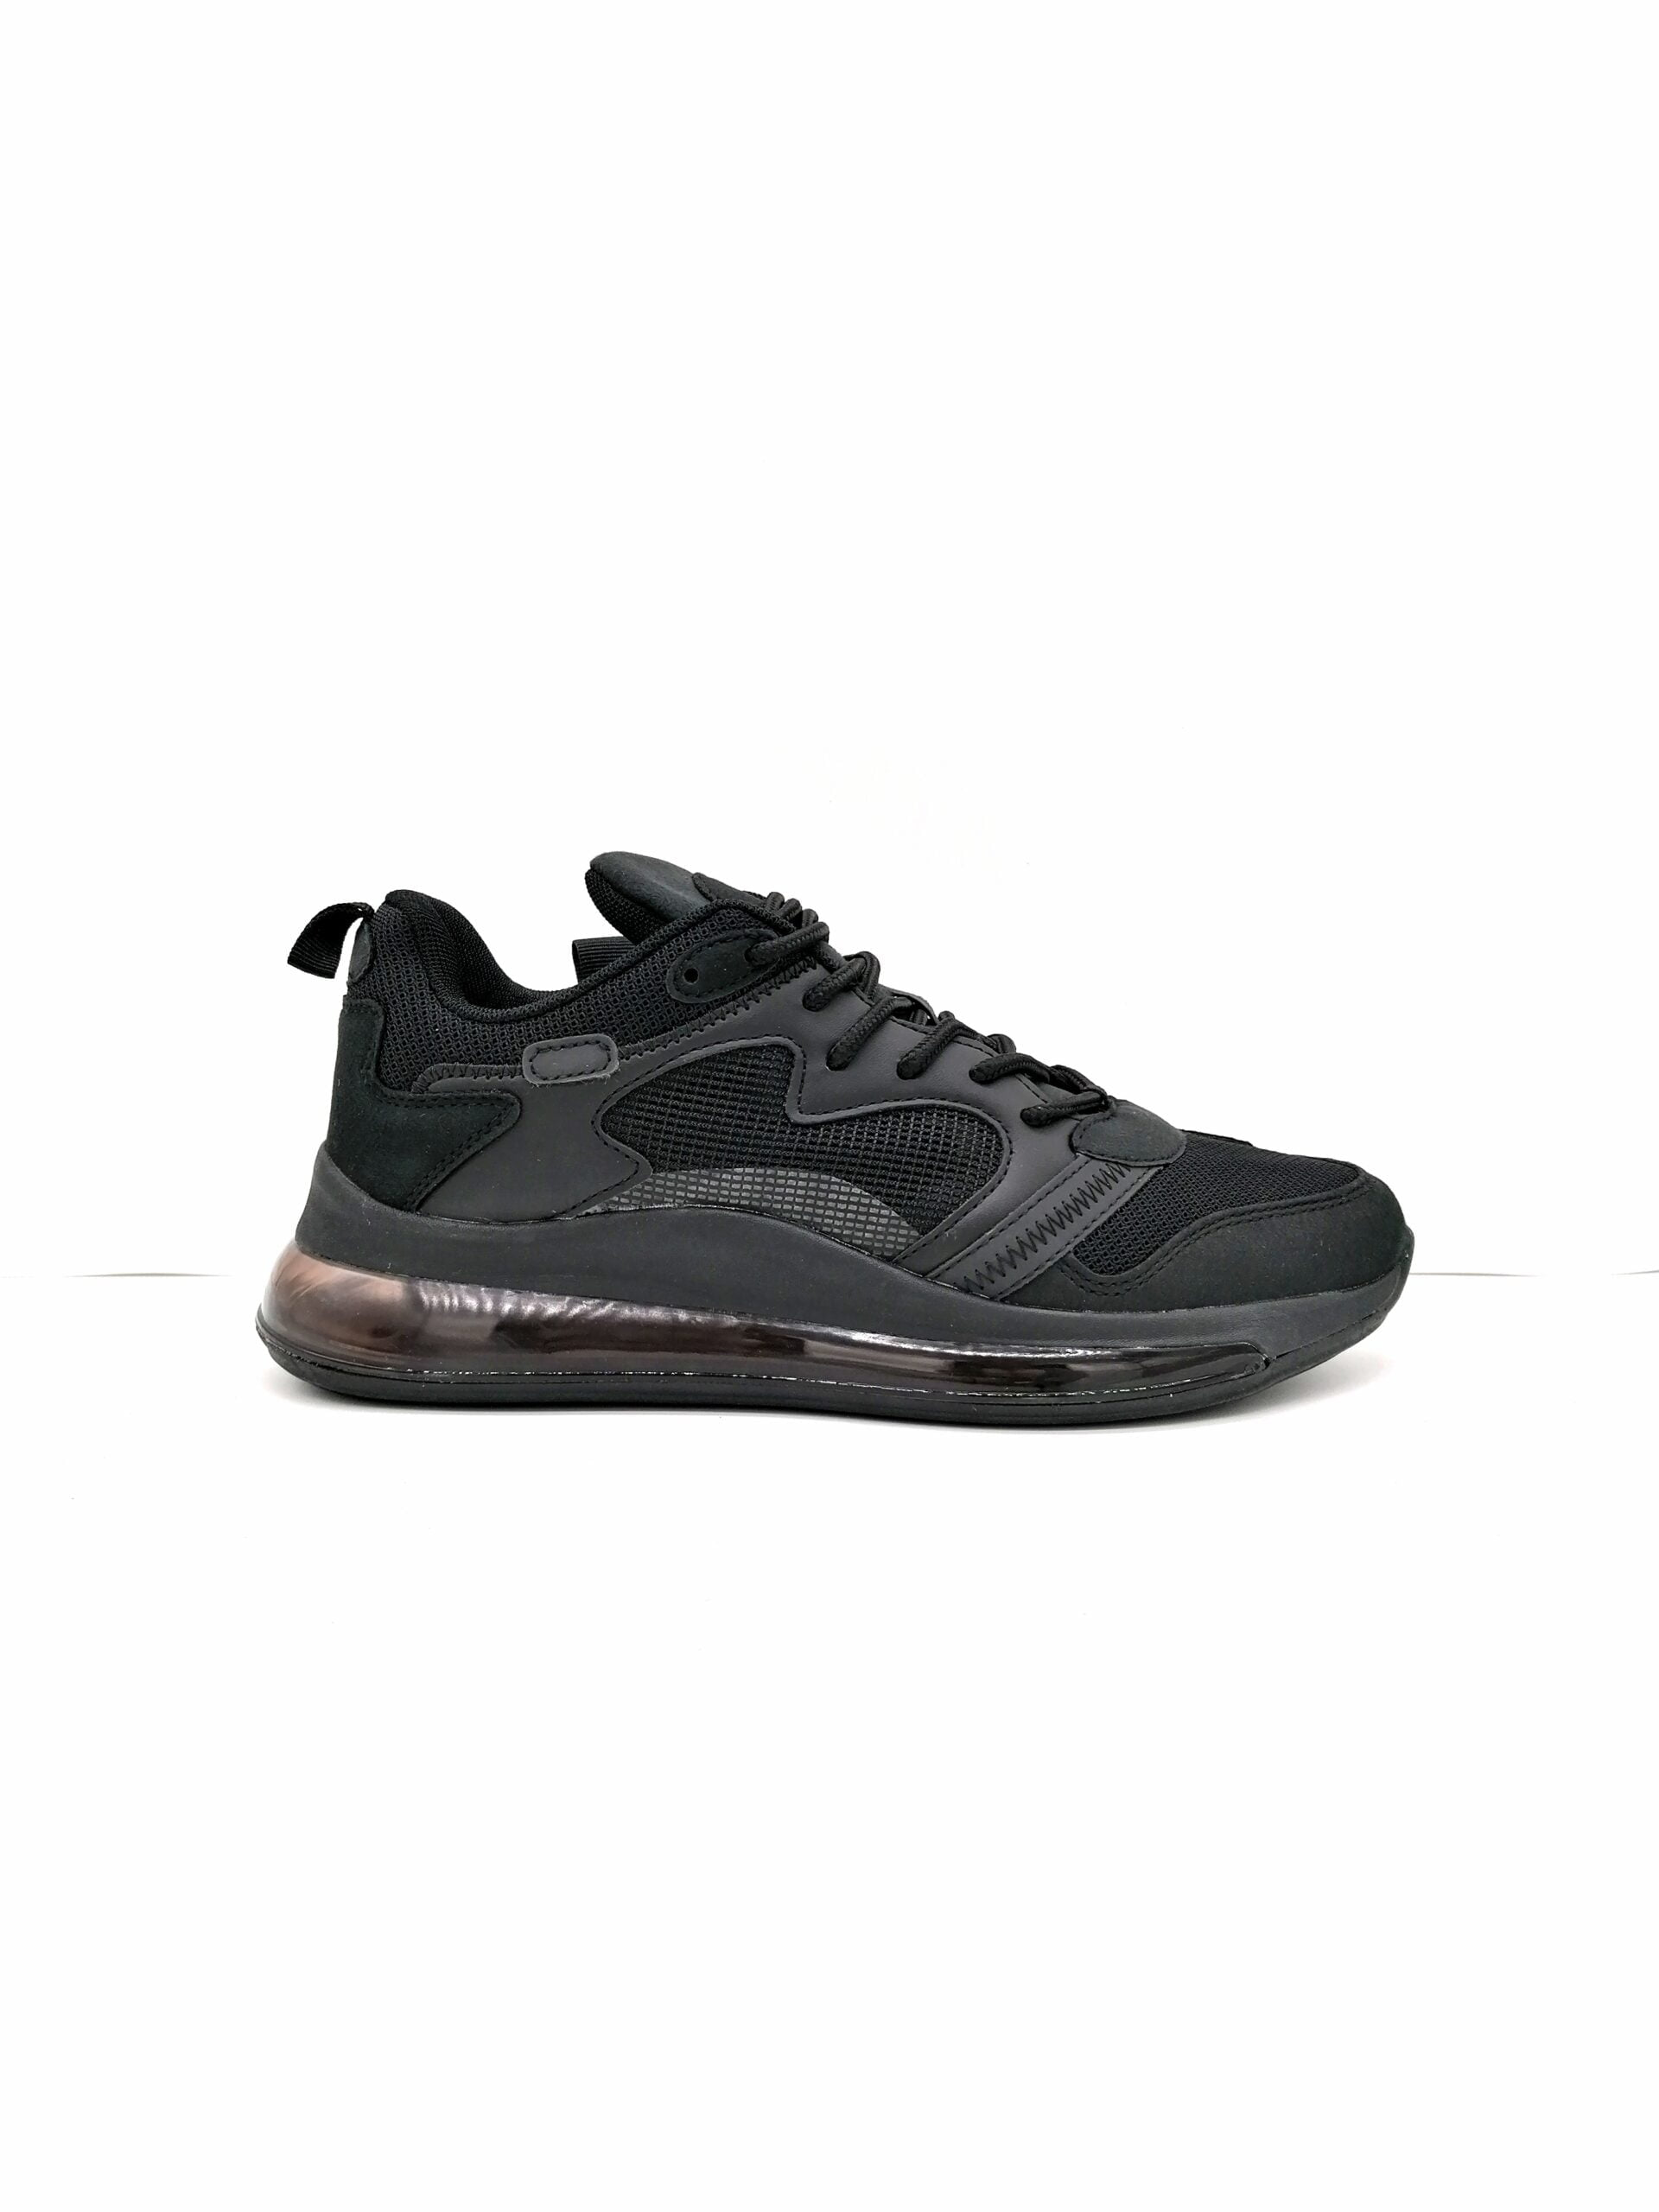 Sports shoe with airship ALL BLACK